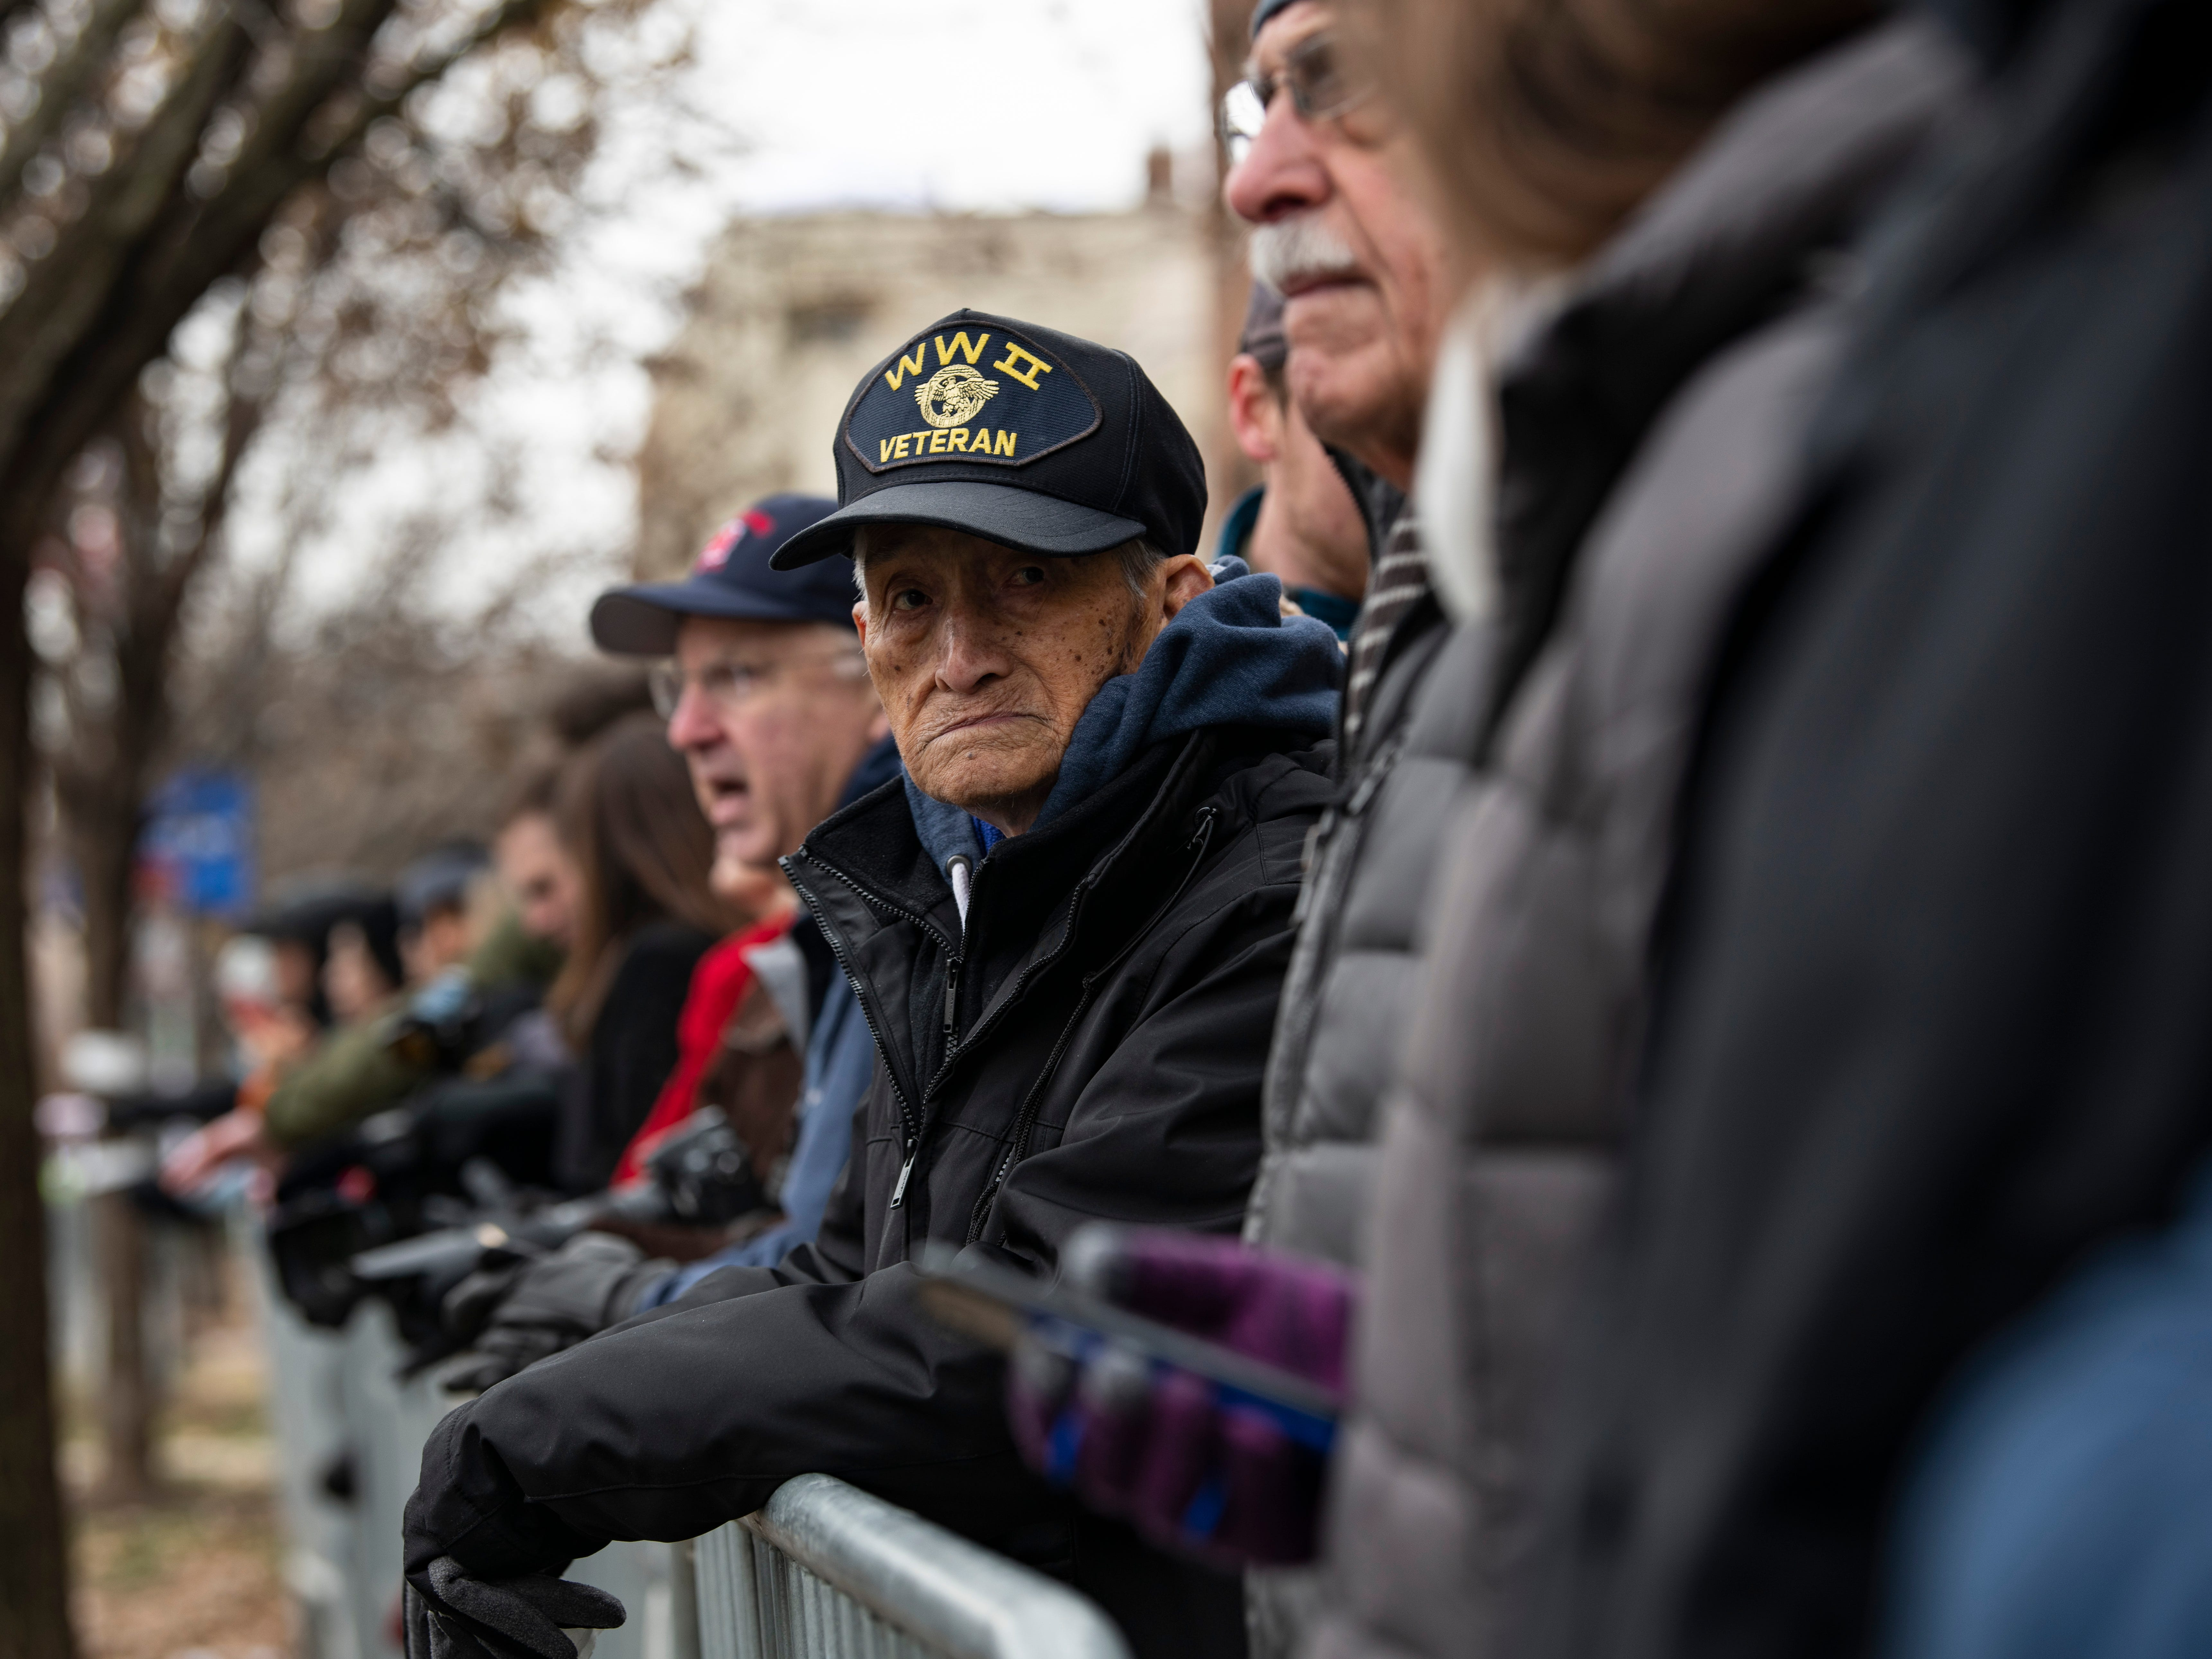 Justino Delara, 100-years-old, joins the crowd to watch the arrival of the hearse containing the flag-draped casket of former President George H.W. Bush at the Washington National Cathedral in Washington, Dec. 5, 2018.